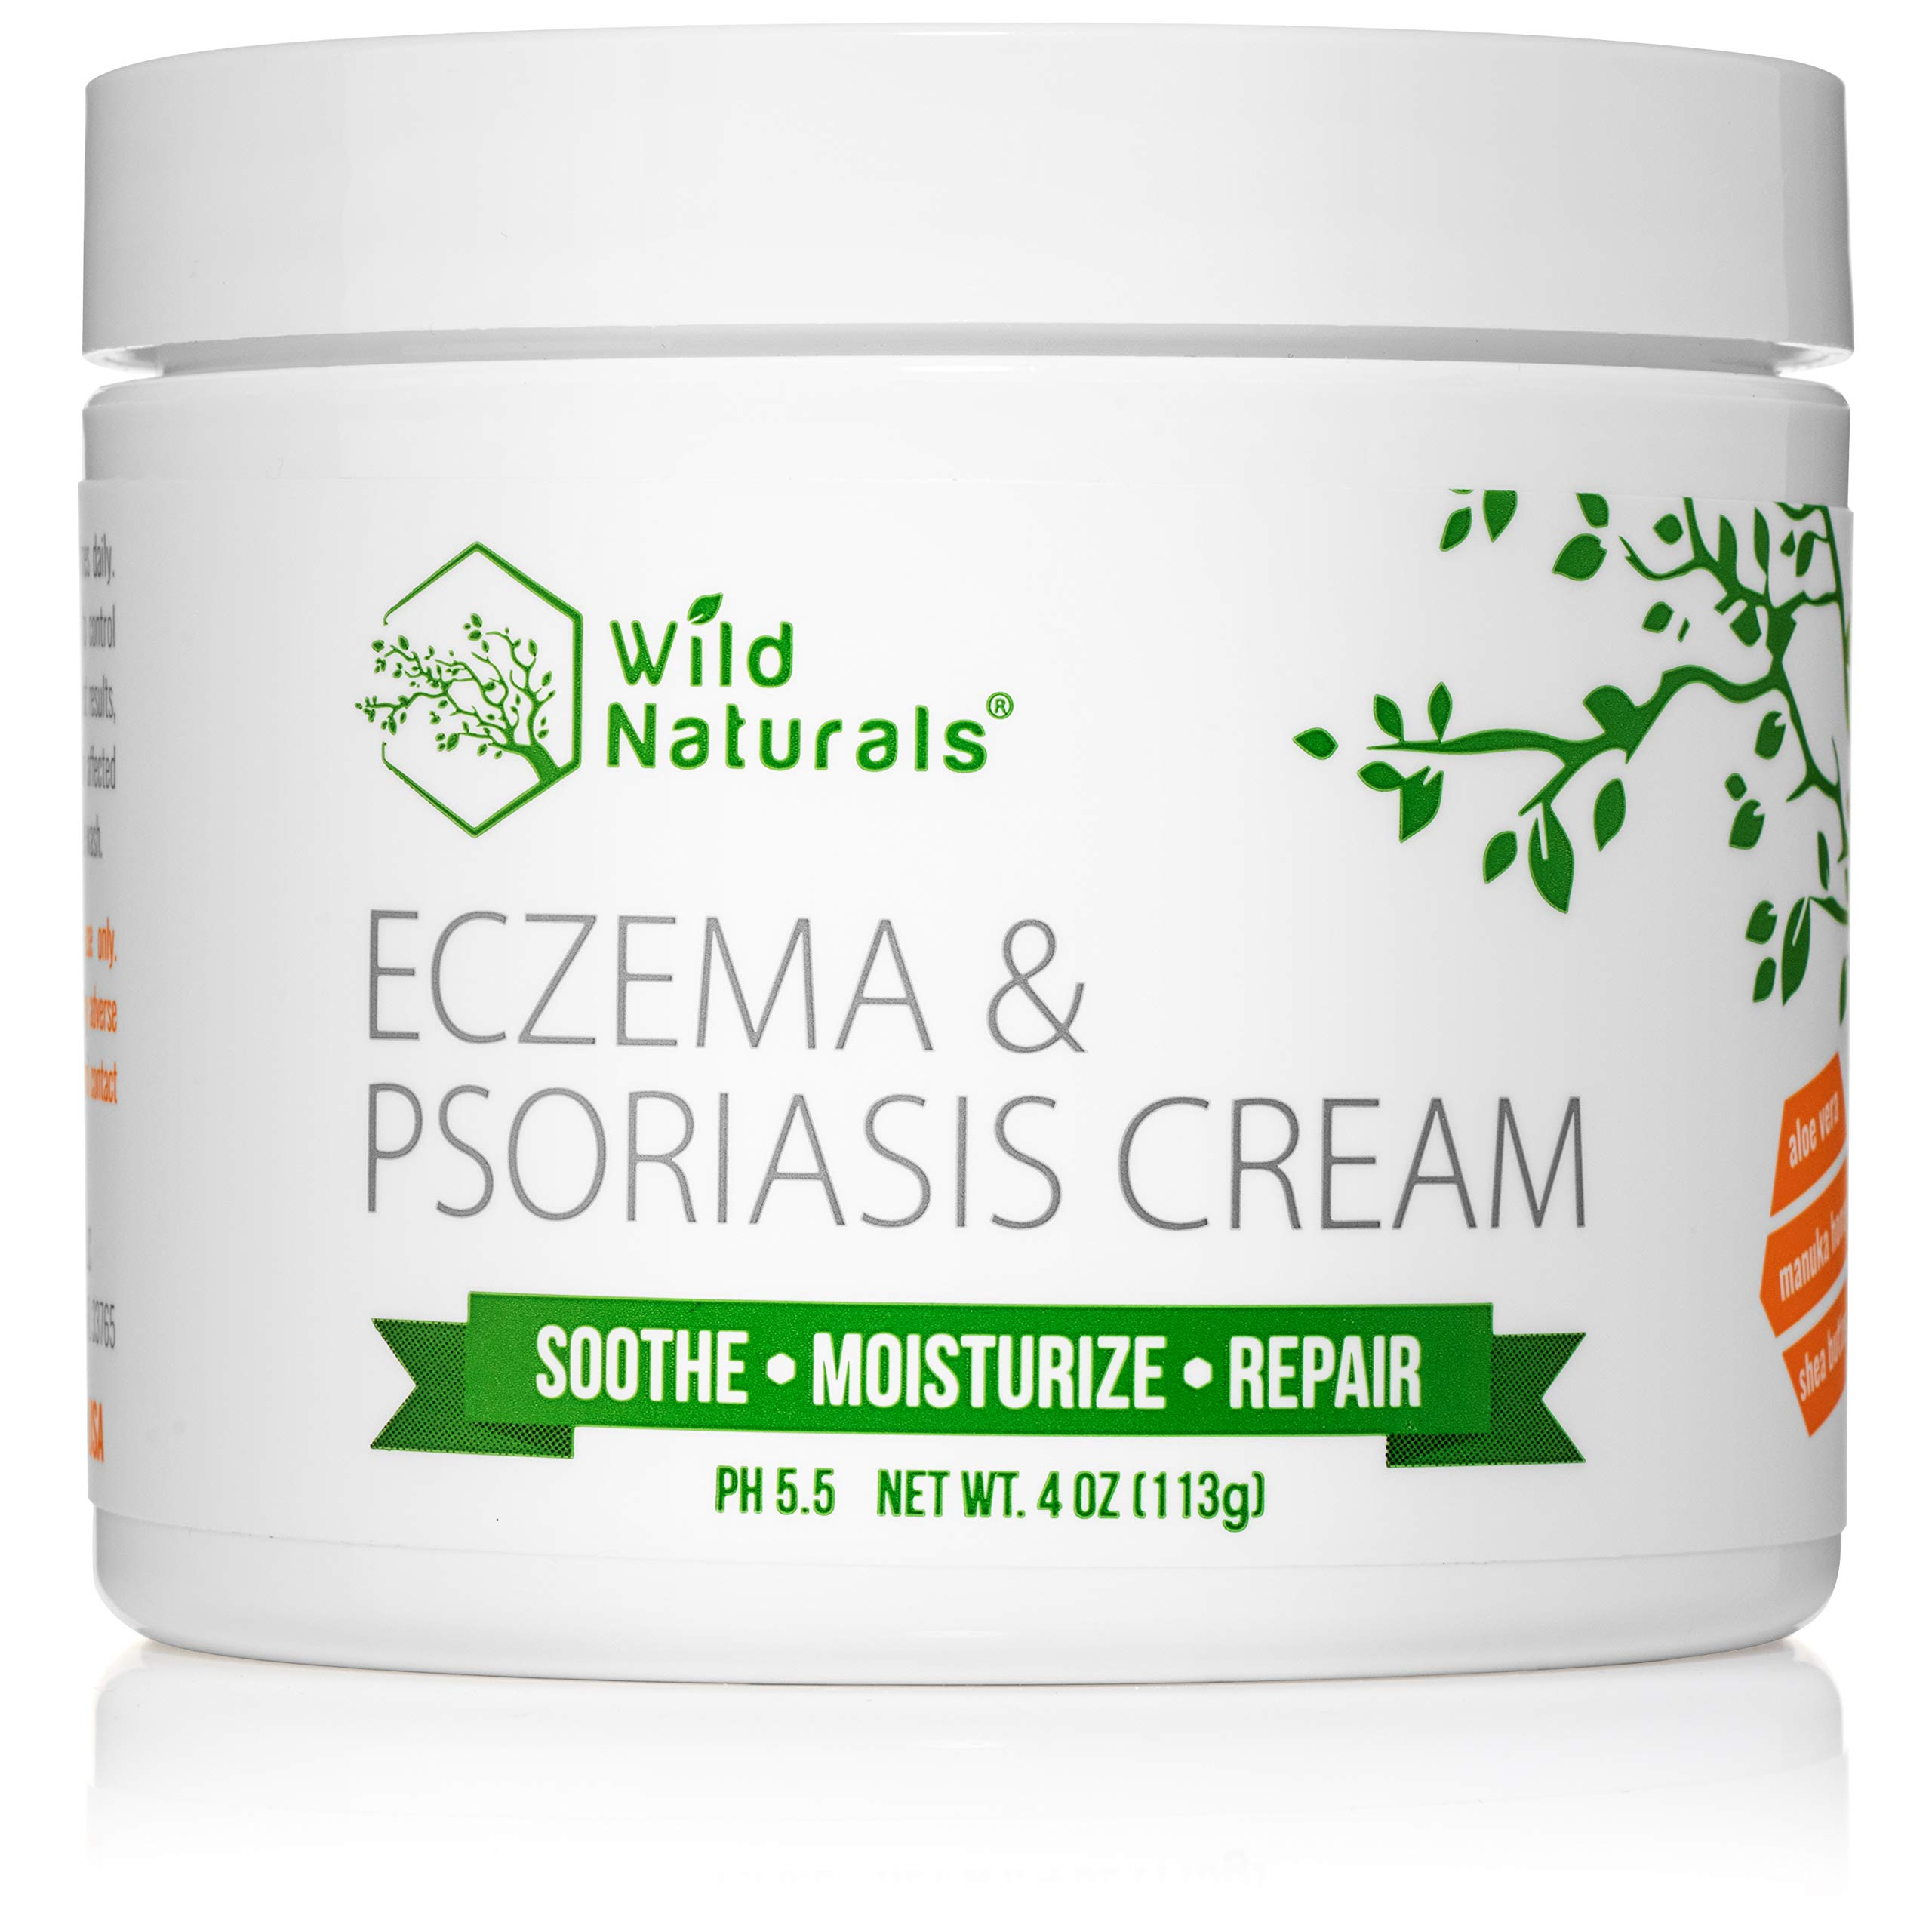 Wild Naturals Eczema Psoriasis Cream - for Dry, Irritated Skin, Natural 15-in-1 Lotion Soothes, Moisturizes, and May Visibly Reduce The Appearance of Redness, for Adults, Kids, and Baby, Steroid-Free